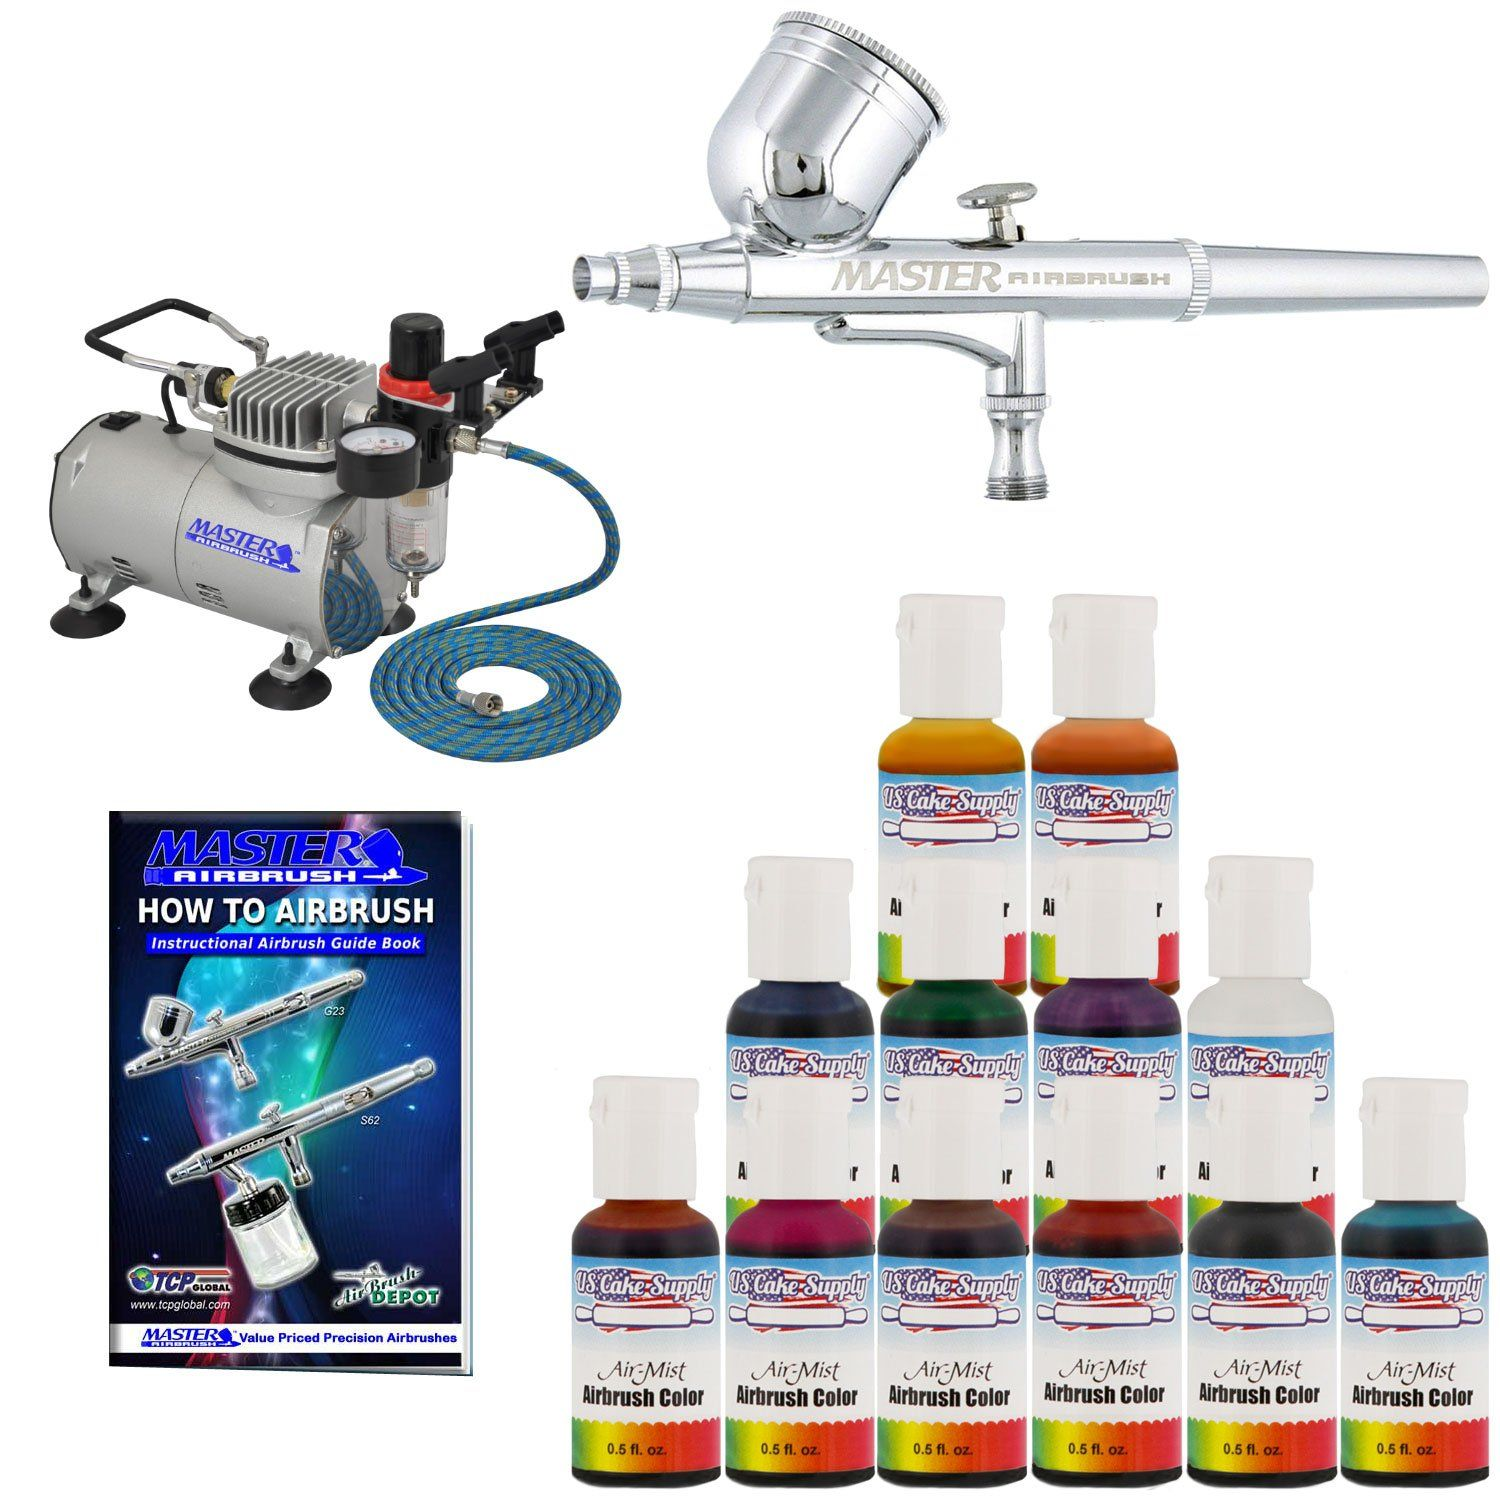 Master Airbrush Cake Decorating Airbrush Kit Christmas Gifts For